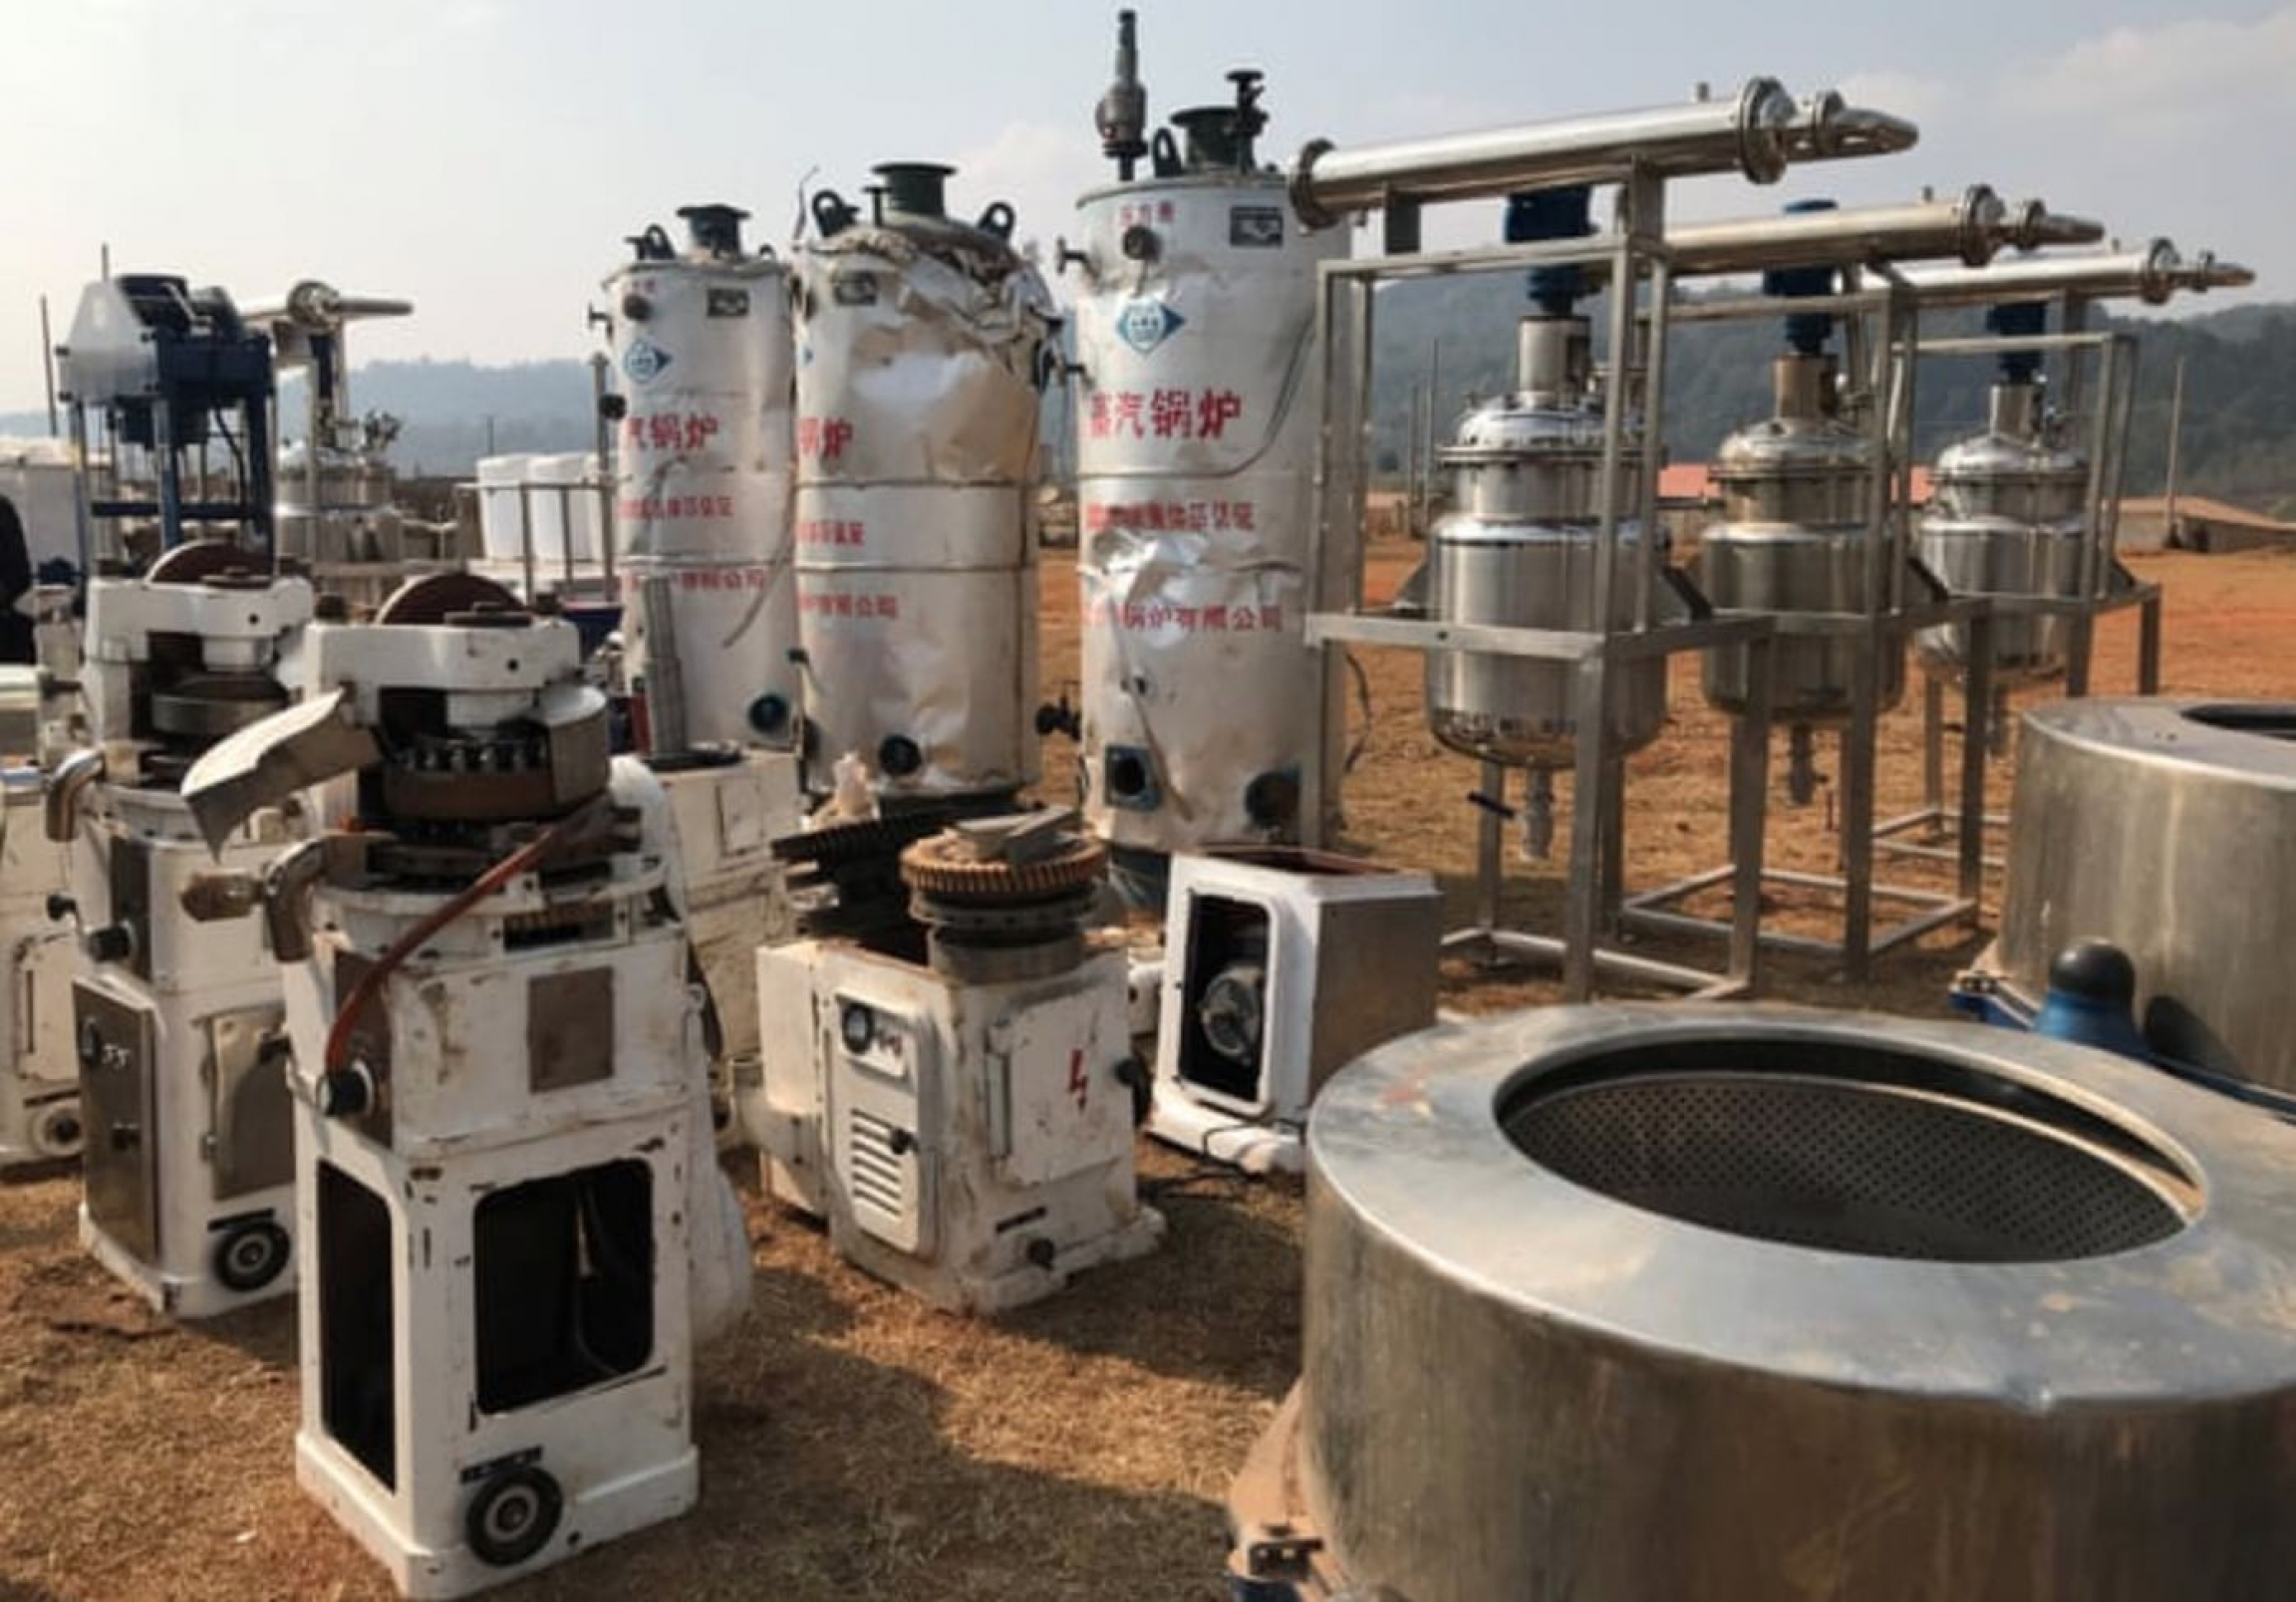 The contents of a meth-producing superlab in Myanmar.